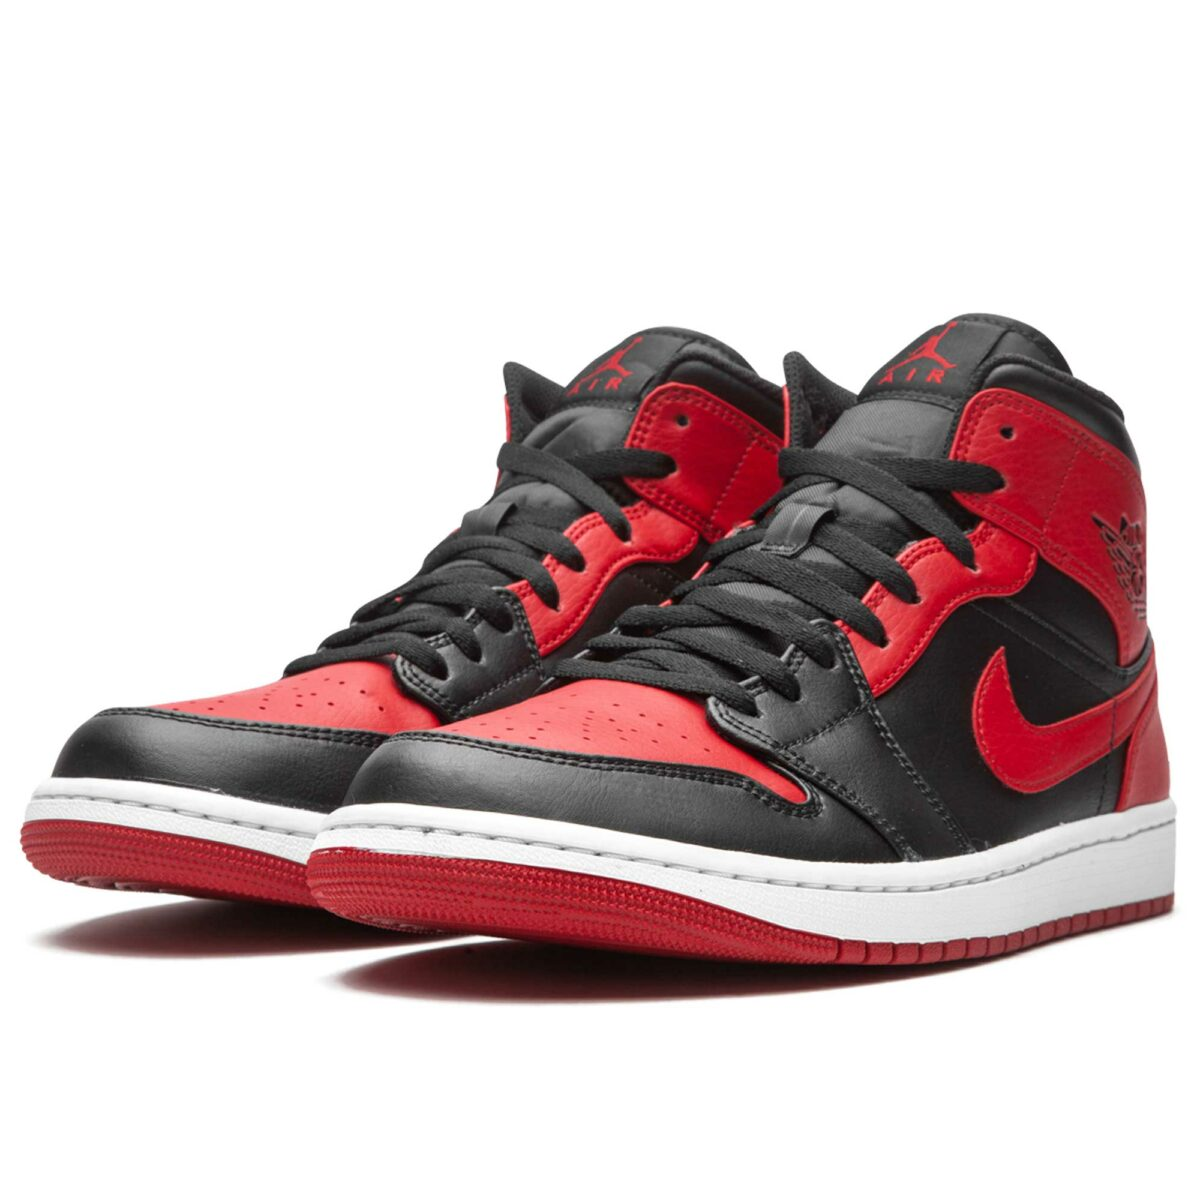 nike air Jordan 1 retro mid banned 2020 554724_074 купить